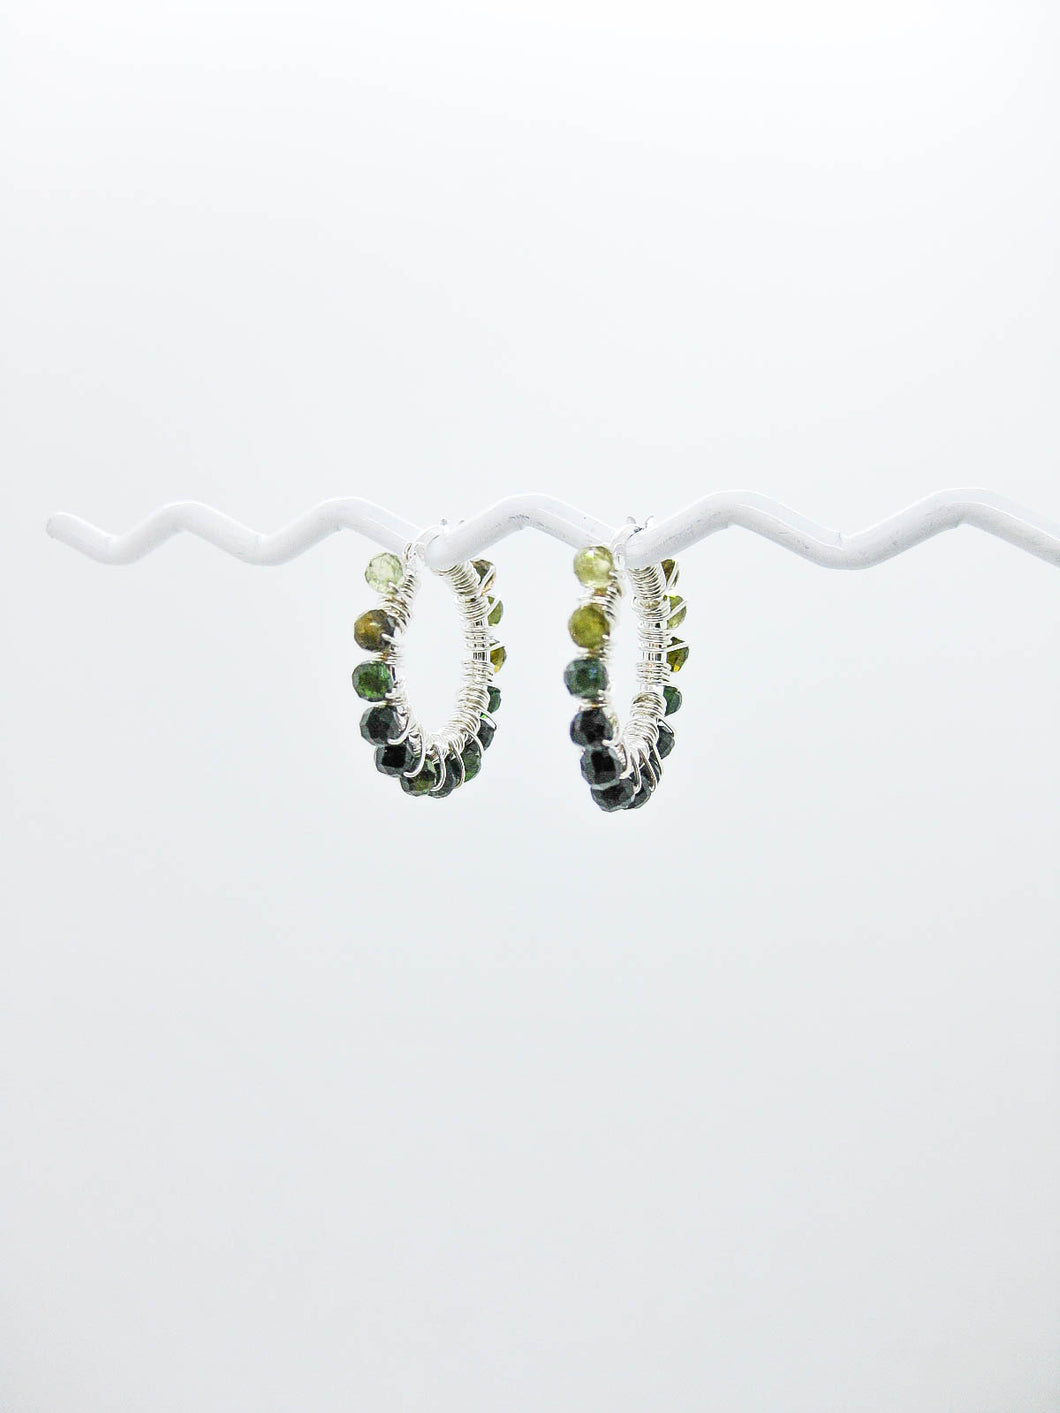 Green Tourmaline Hoop Earrings - e515